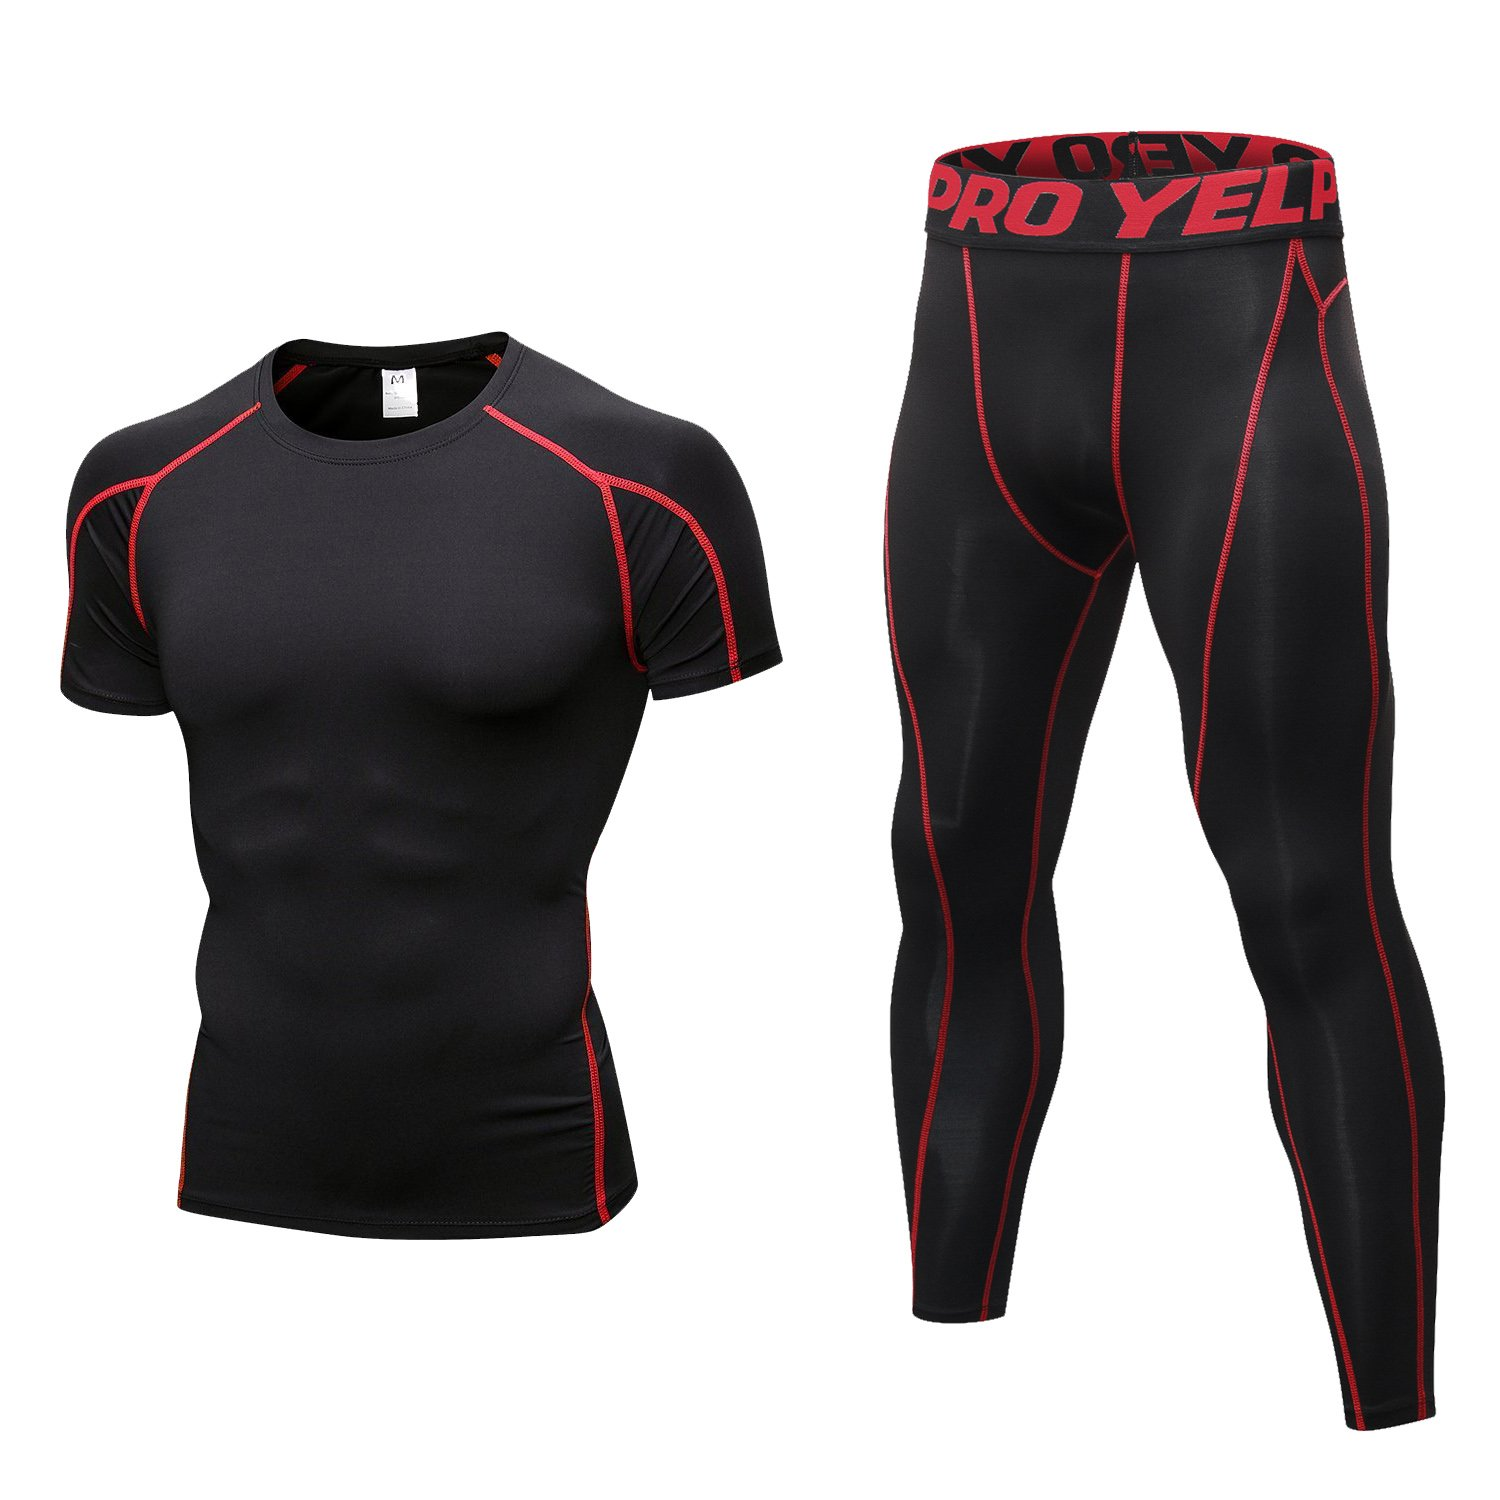 2pcs L Size Mens Sports Compress Body Fitness GYM Tight Leggings Trousers